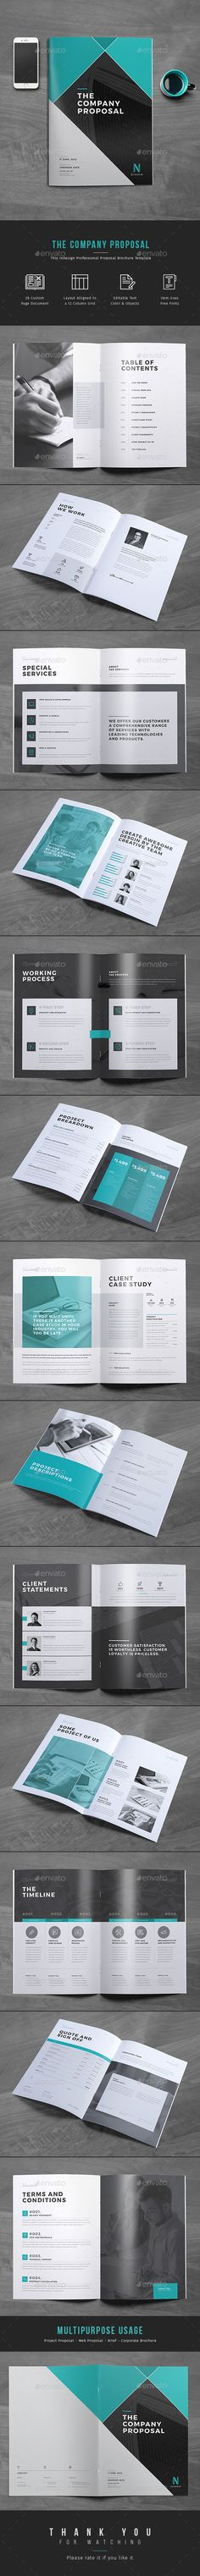 Professional Business Proposal Template u2026 Pinteresu2026 - best proposal templates